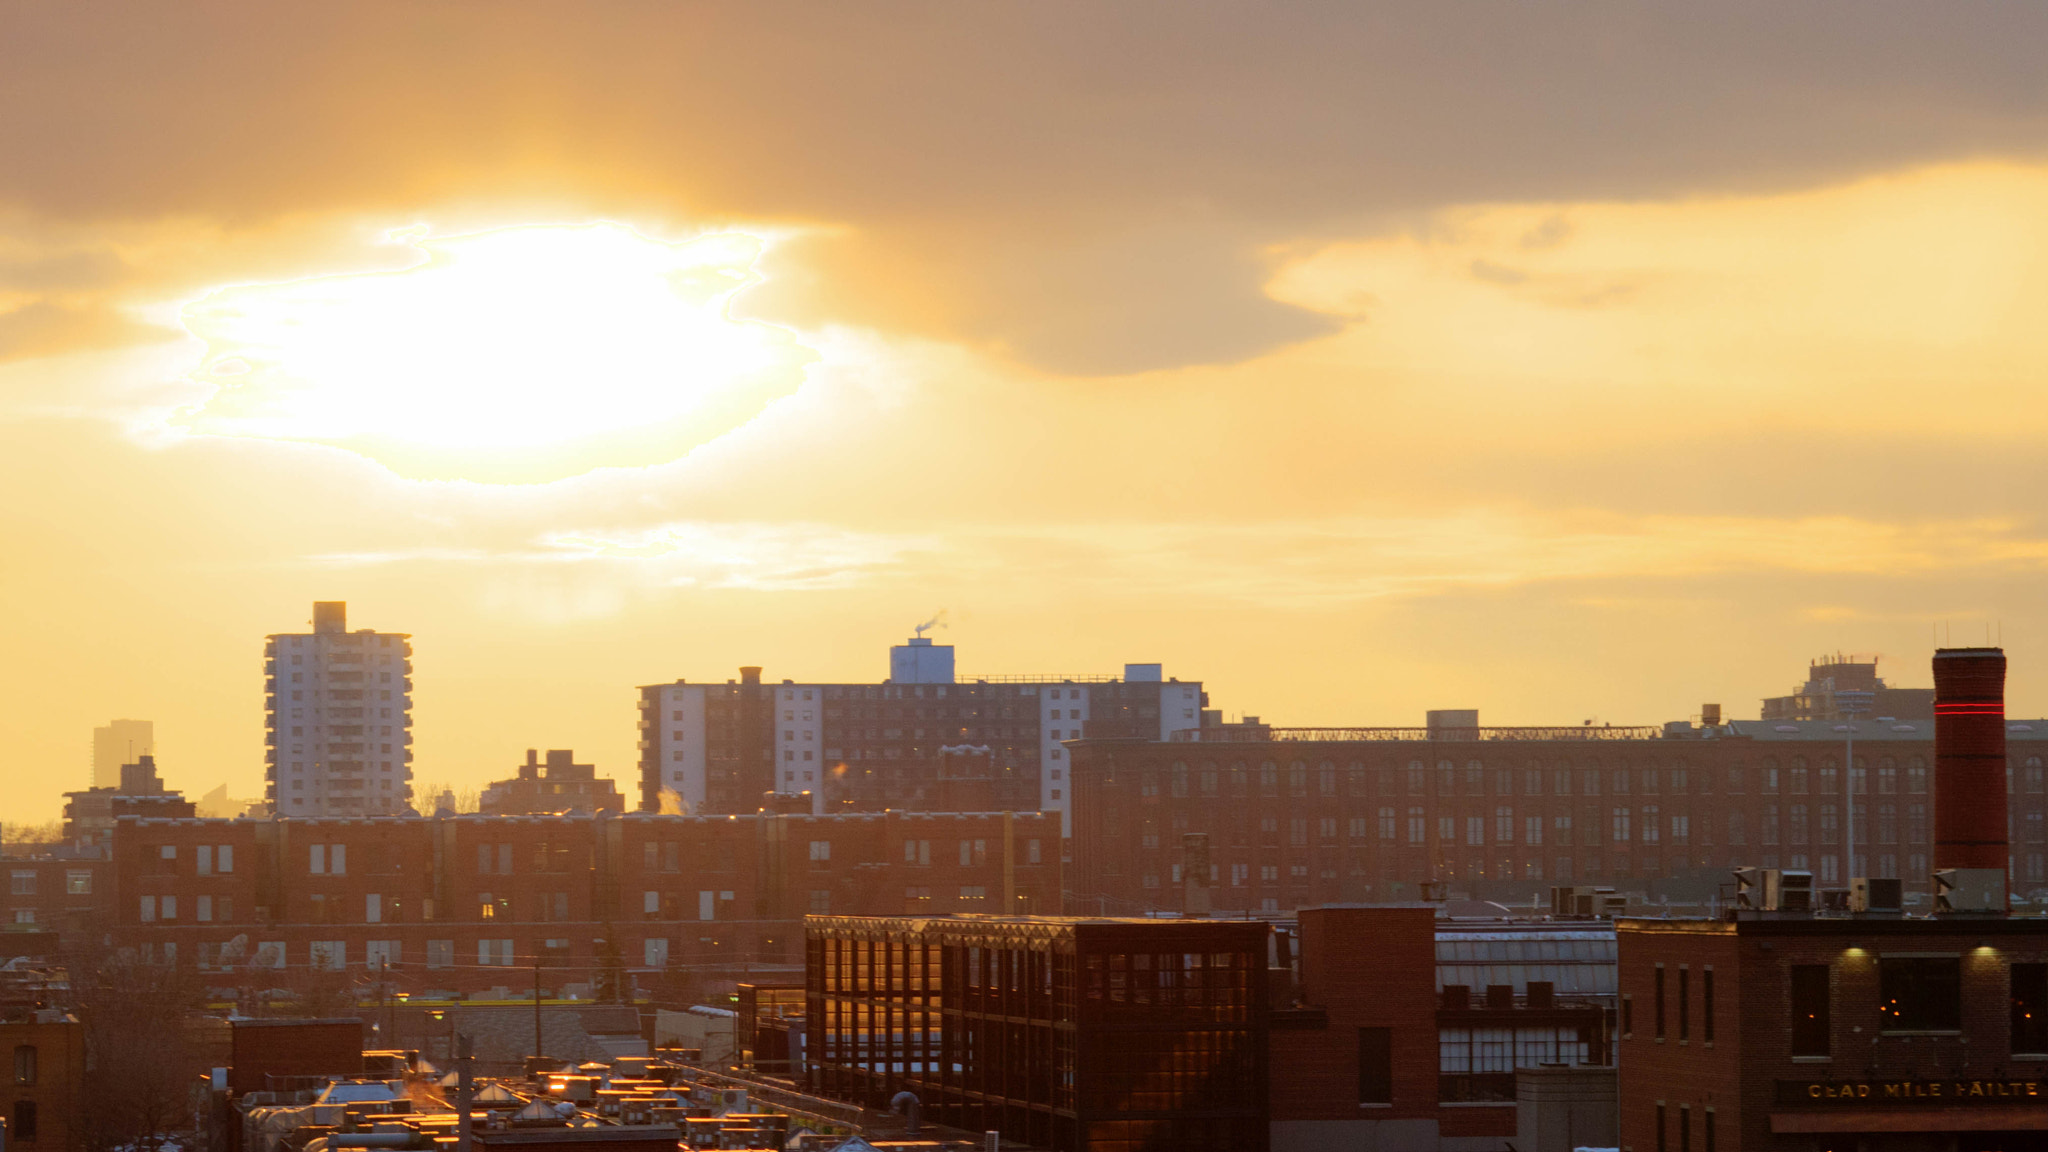 Photograph Sunset in Liberty Village by Ash Furrow on 500px